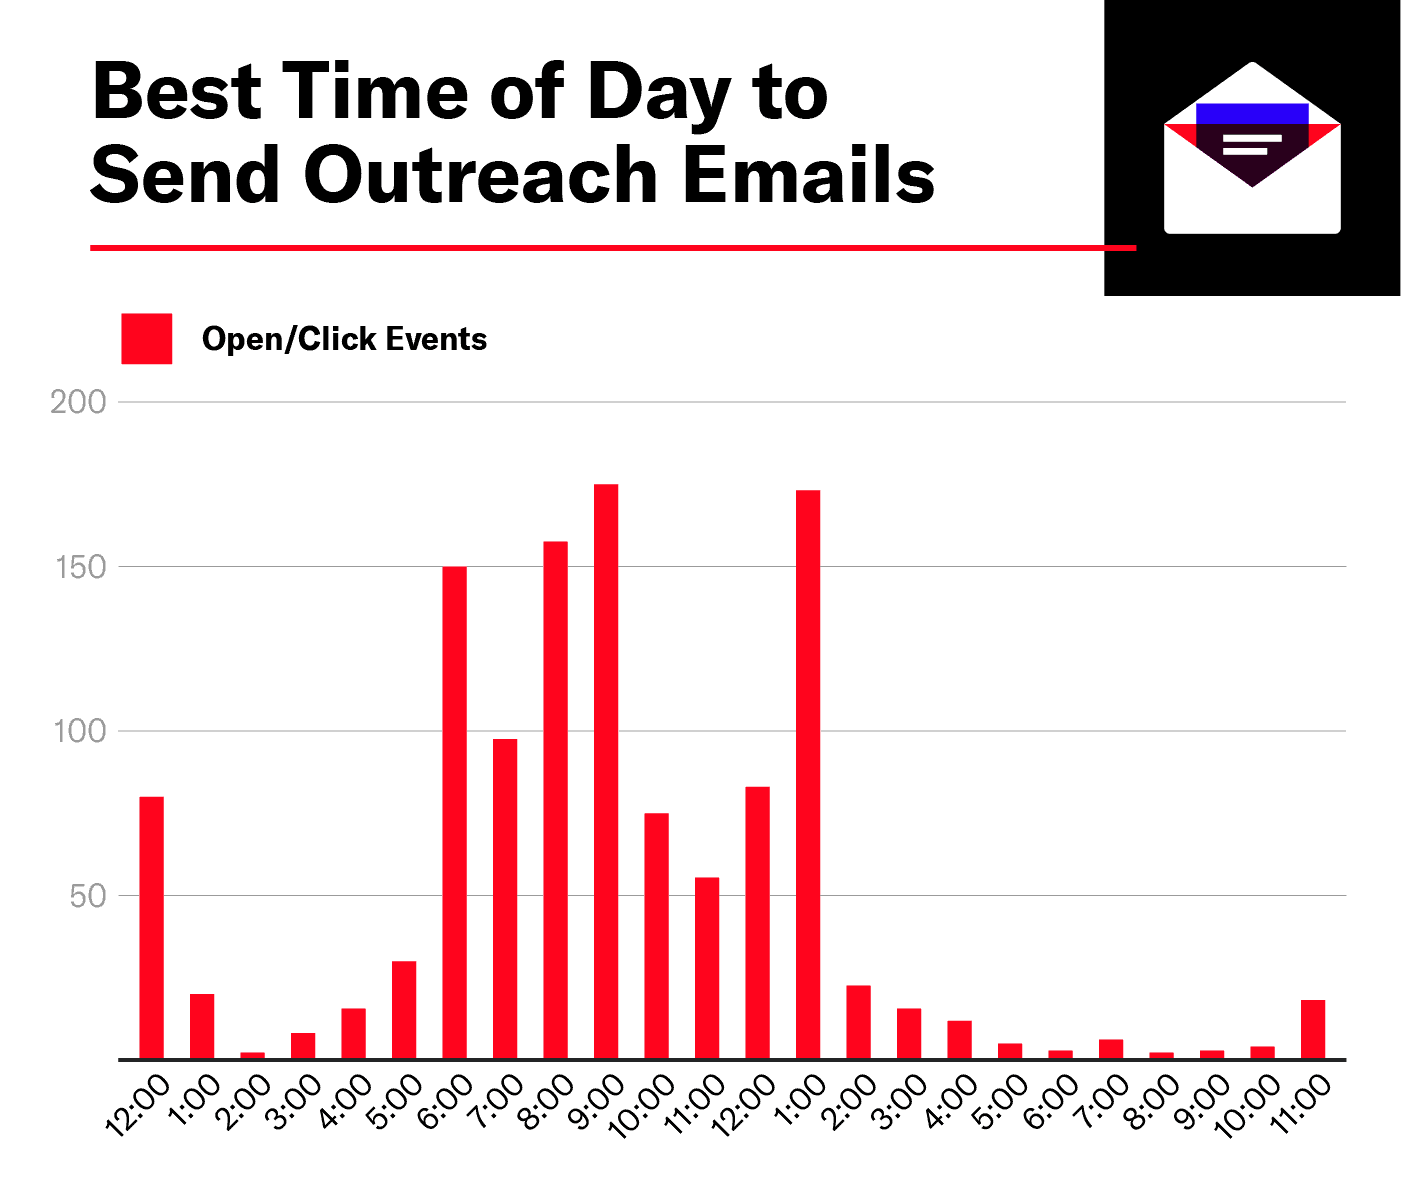 The Best Time to Send Outreach Emails Chart by Hour of Day by email opens and clicks